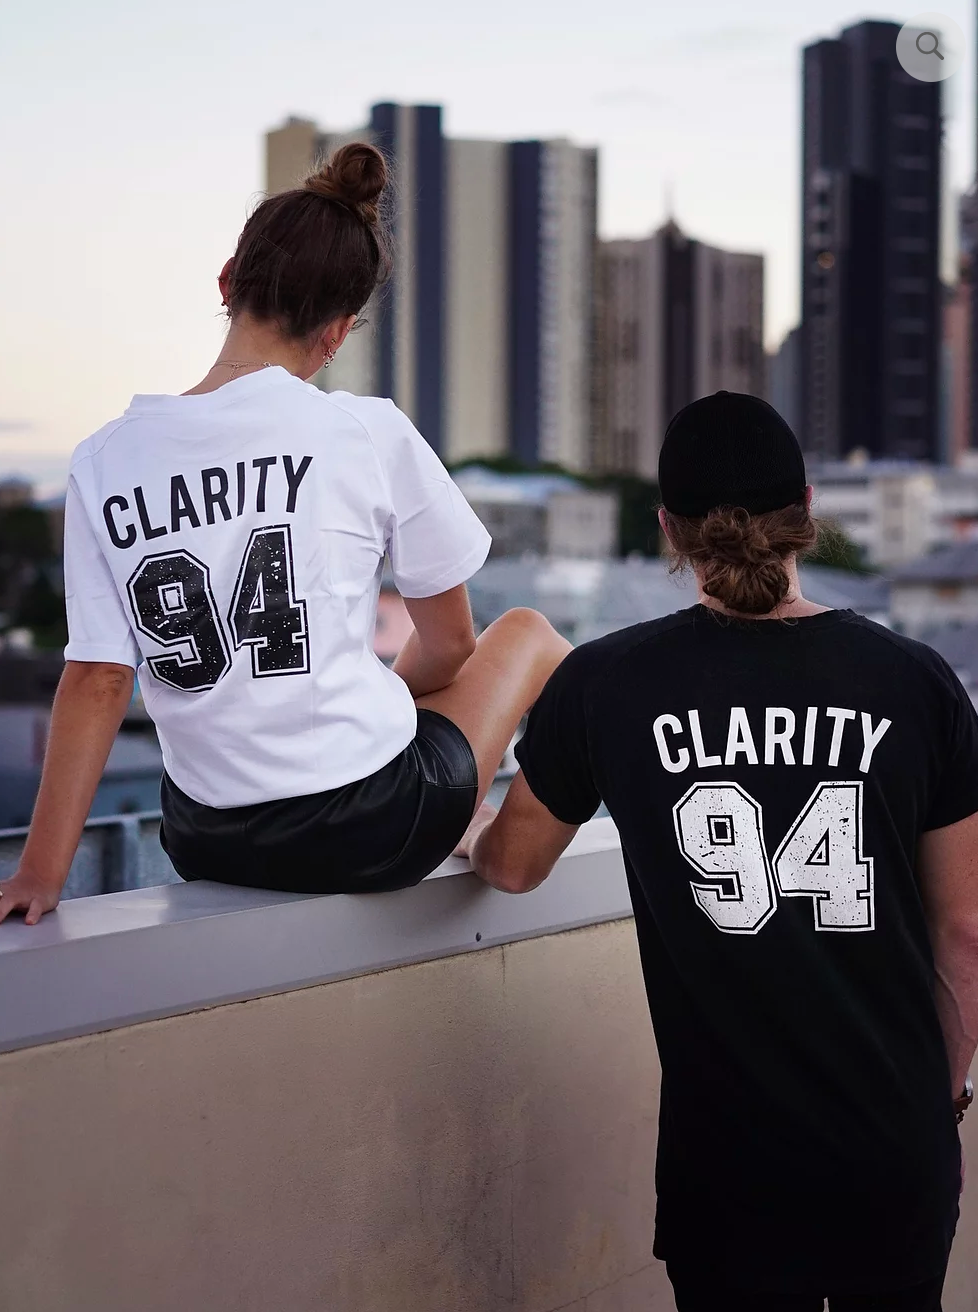 Clarity 94 Jersey (VERY LOW STOCK)